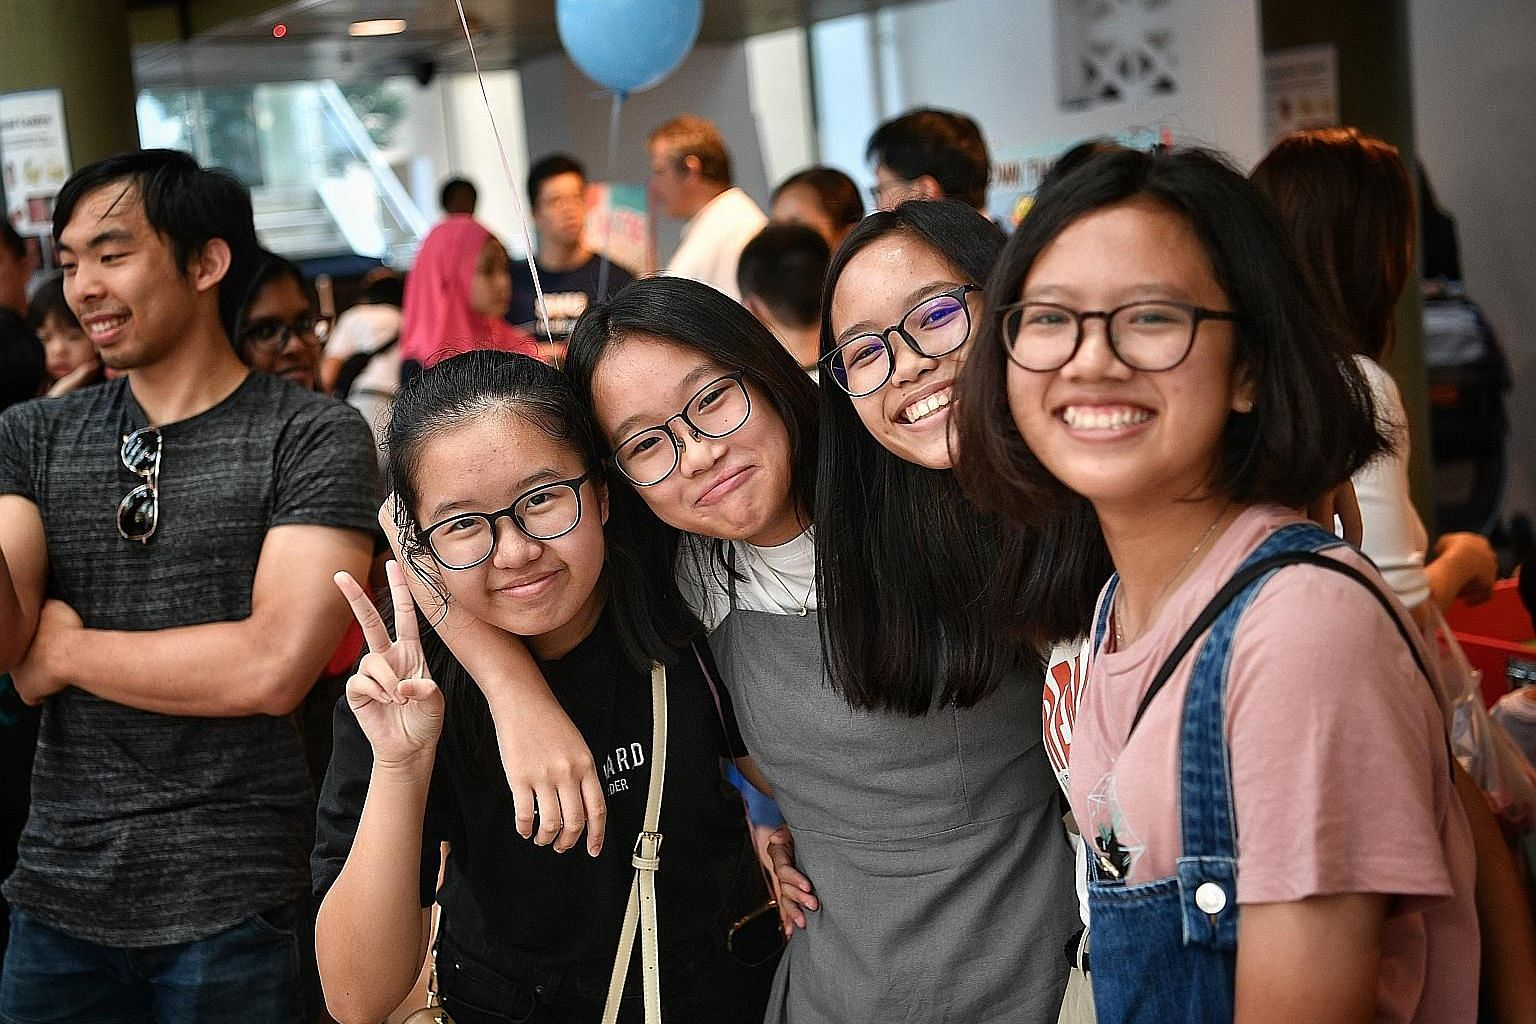 Cast member Nichelle Seow (in grey) with her friends at yesterday's launch of the film, My Face. Born with a cleft lip, she had corrective surgery when she was about four to five months old. She said she gets teased and called names, but has learnt t